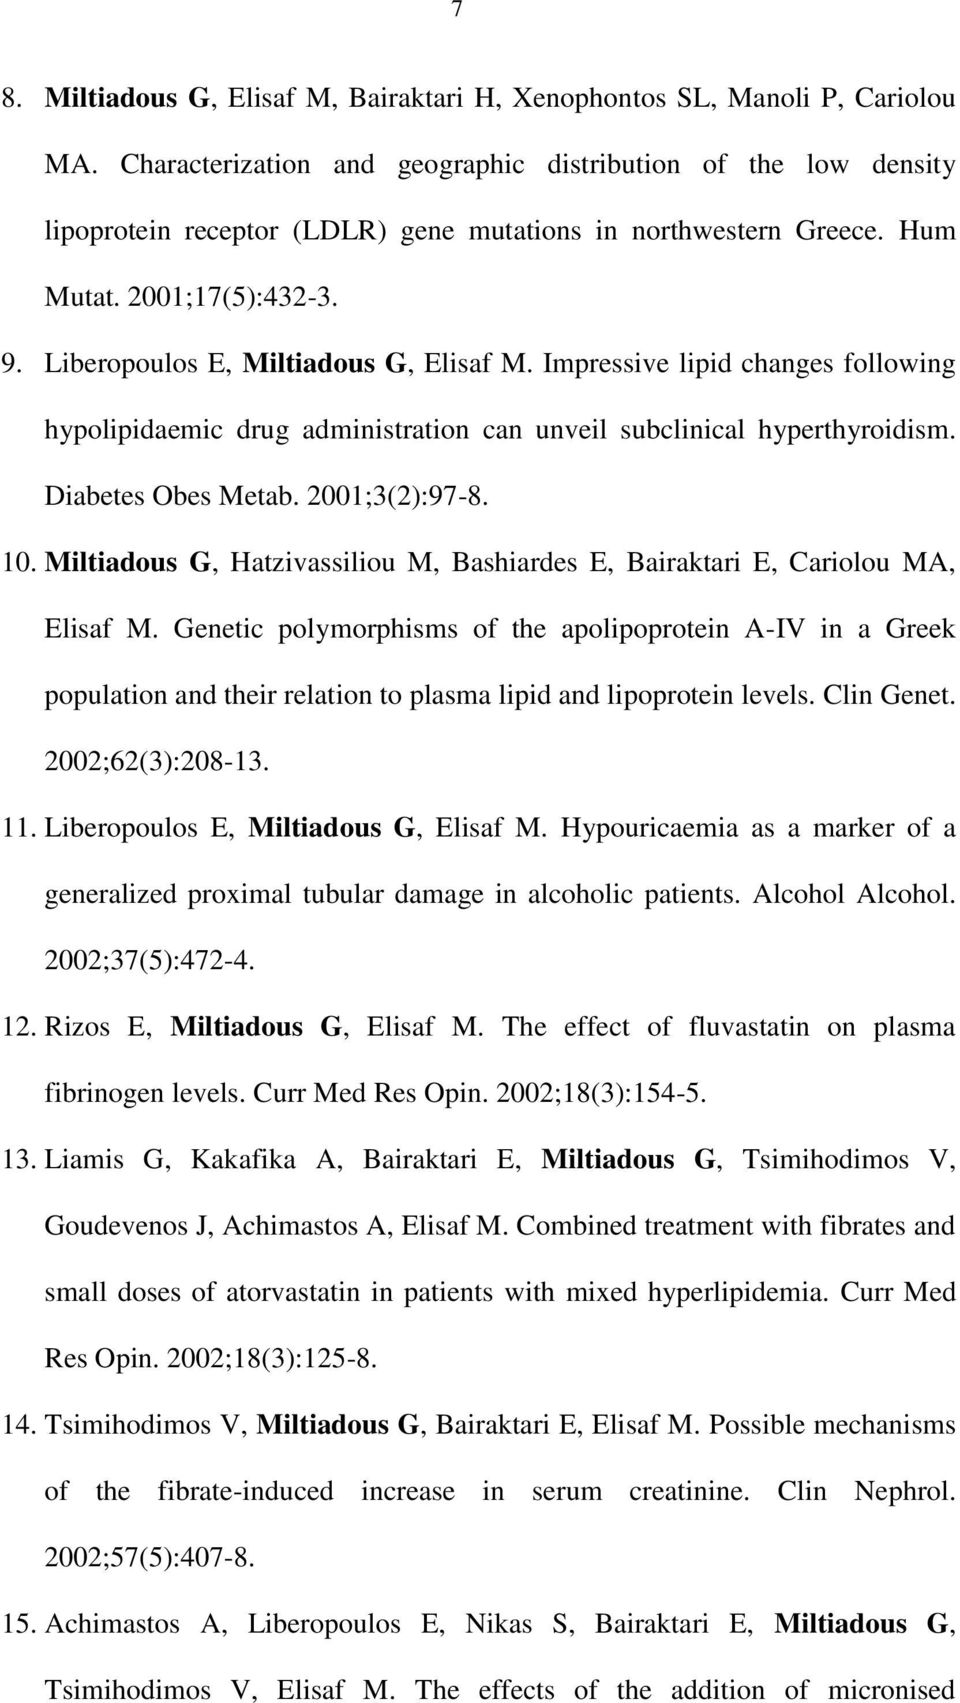 Liberopoulos E, Miltiadous G, Elisaf M. Impressive lipid changes following hypolipidaemic drug administration can unveil subclinical hyperthyroidism. Diabetes Obes Metab. 2001;3(2):97-8. 10.